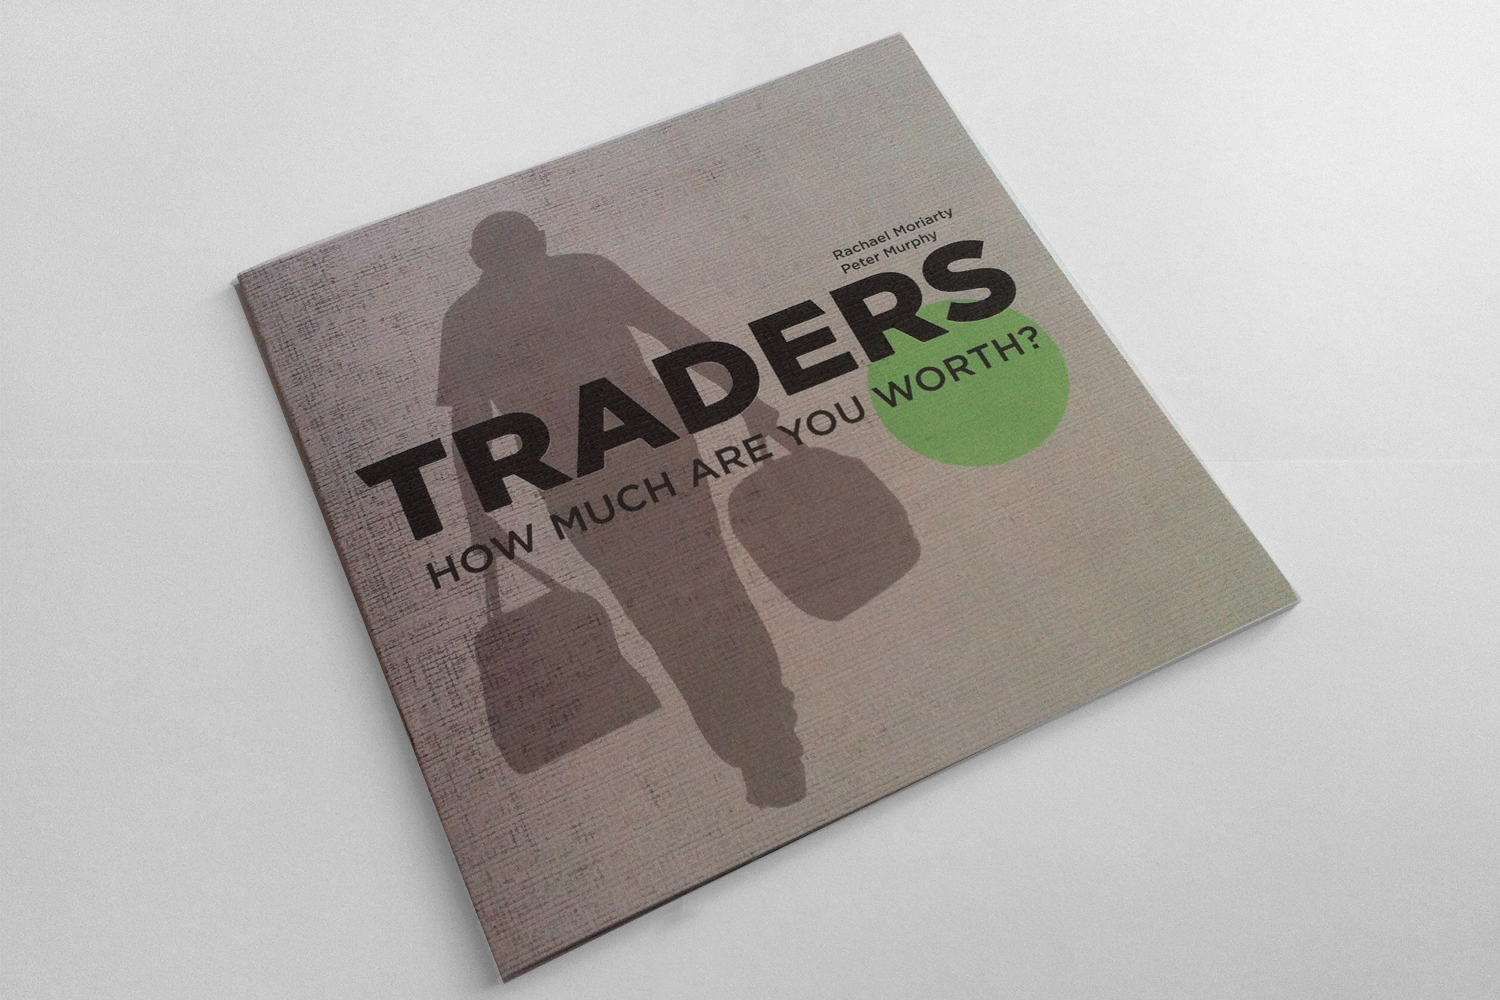 Cover image: Traders